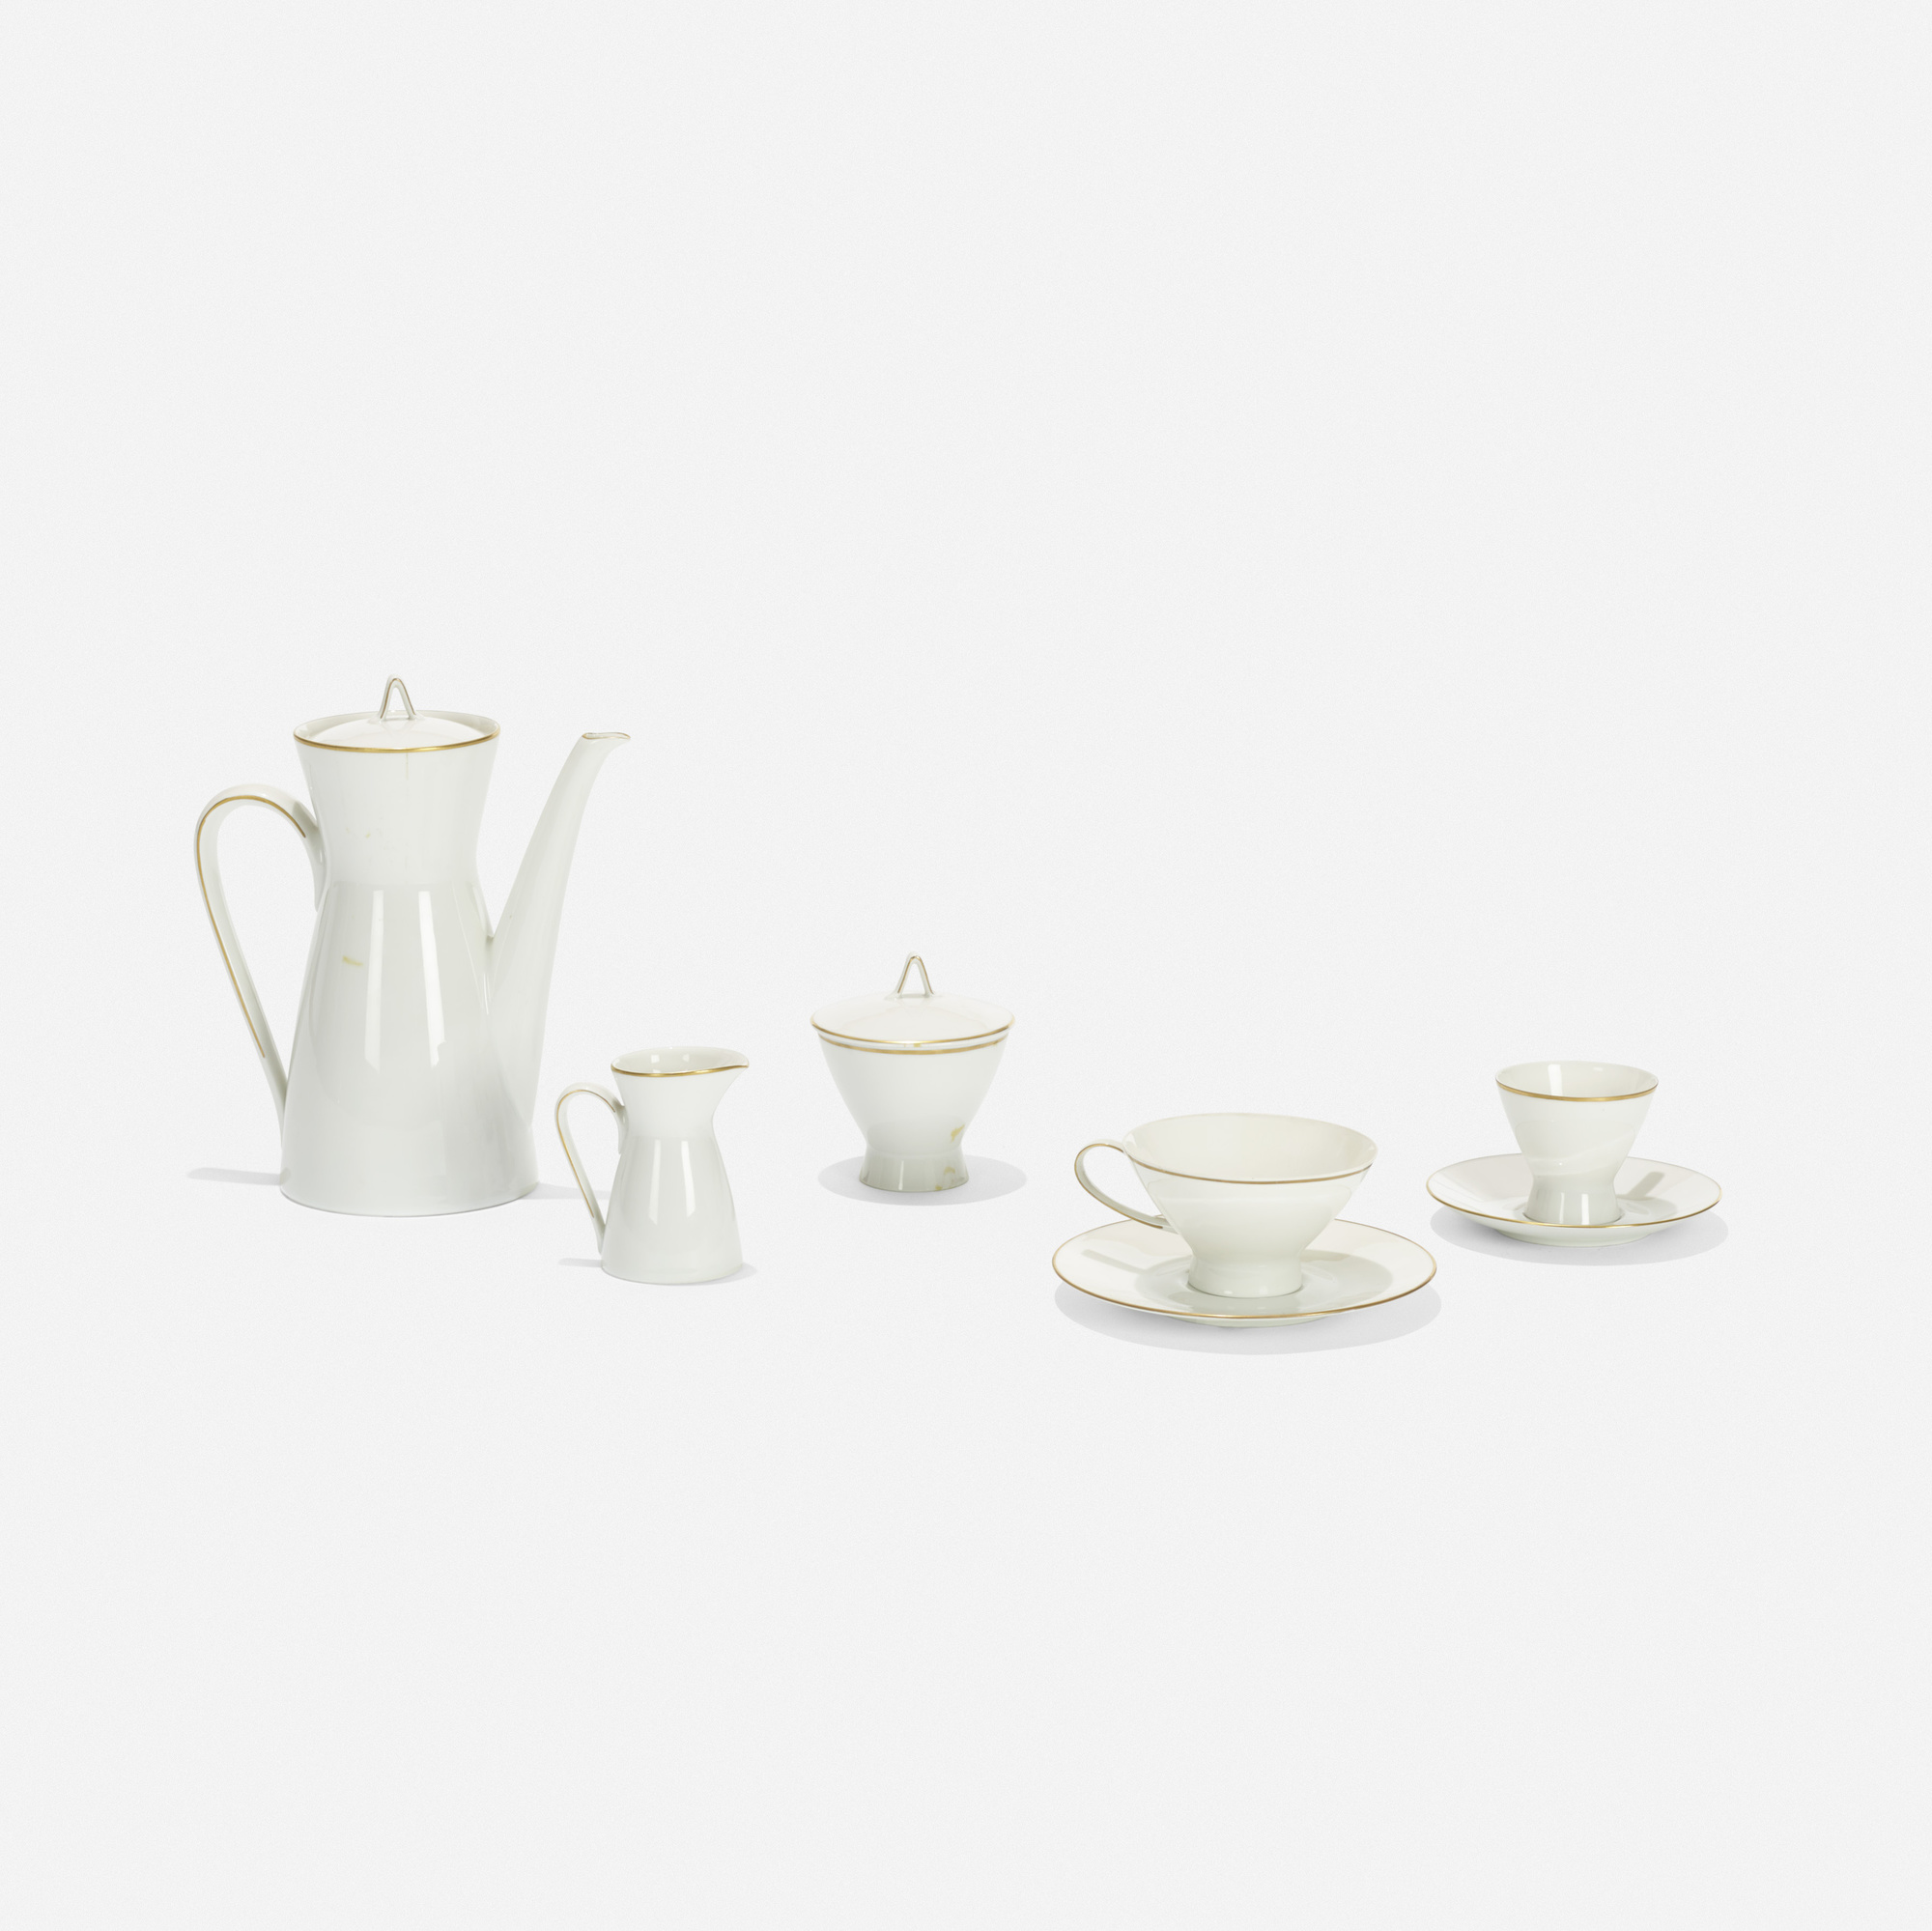 152: Raymond Loewy and Raymond Latham / coffee service (1 of 3)